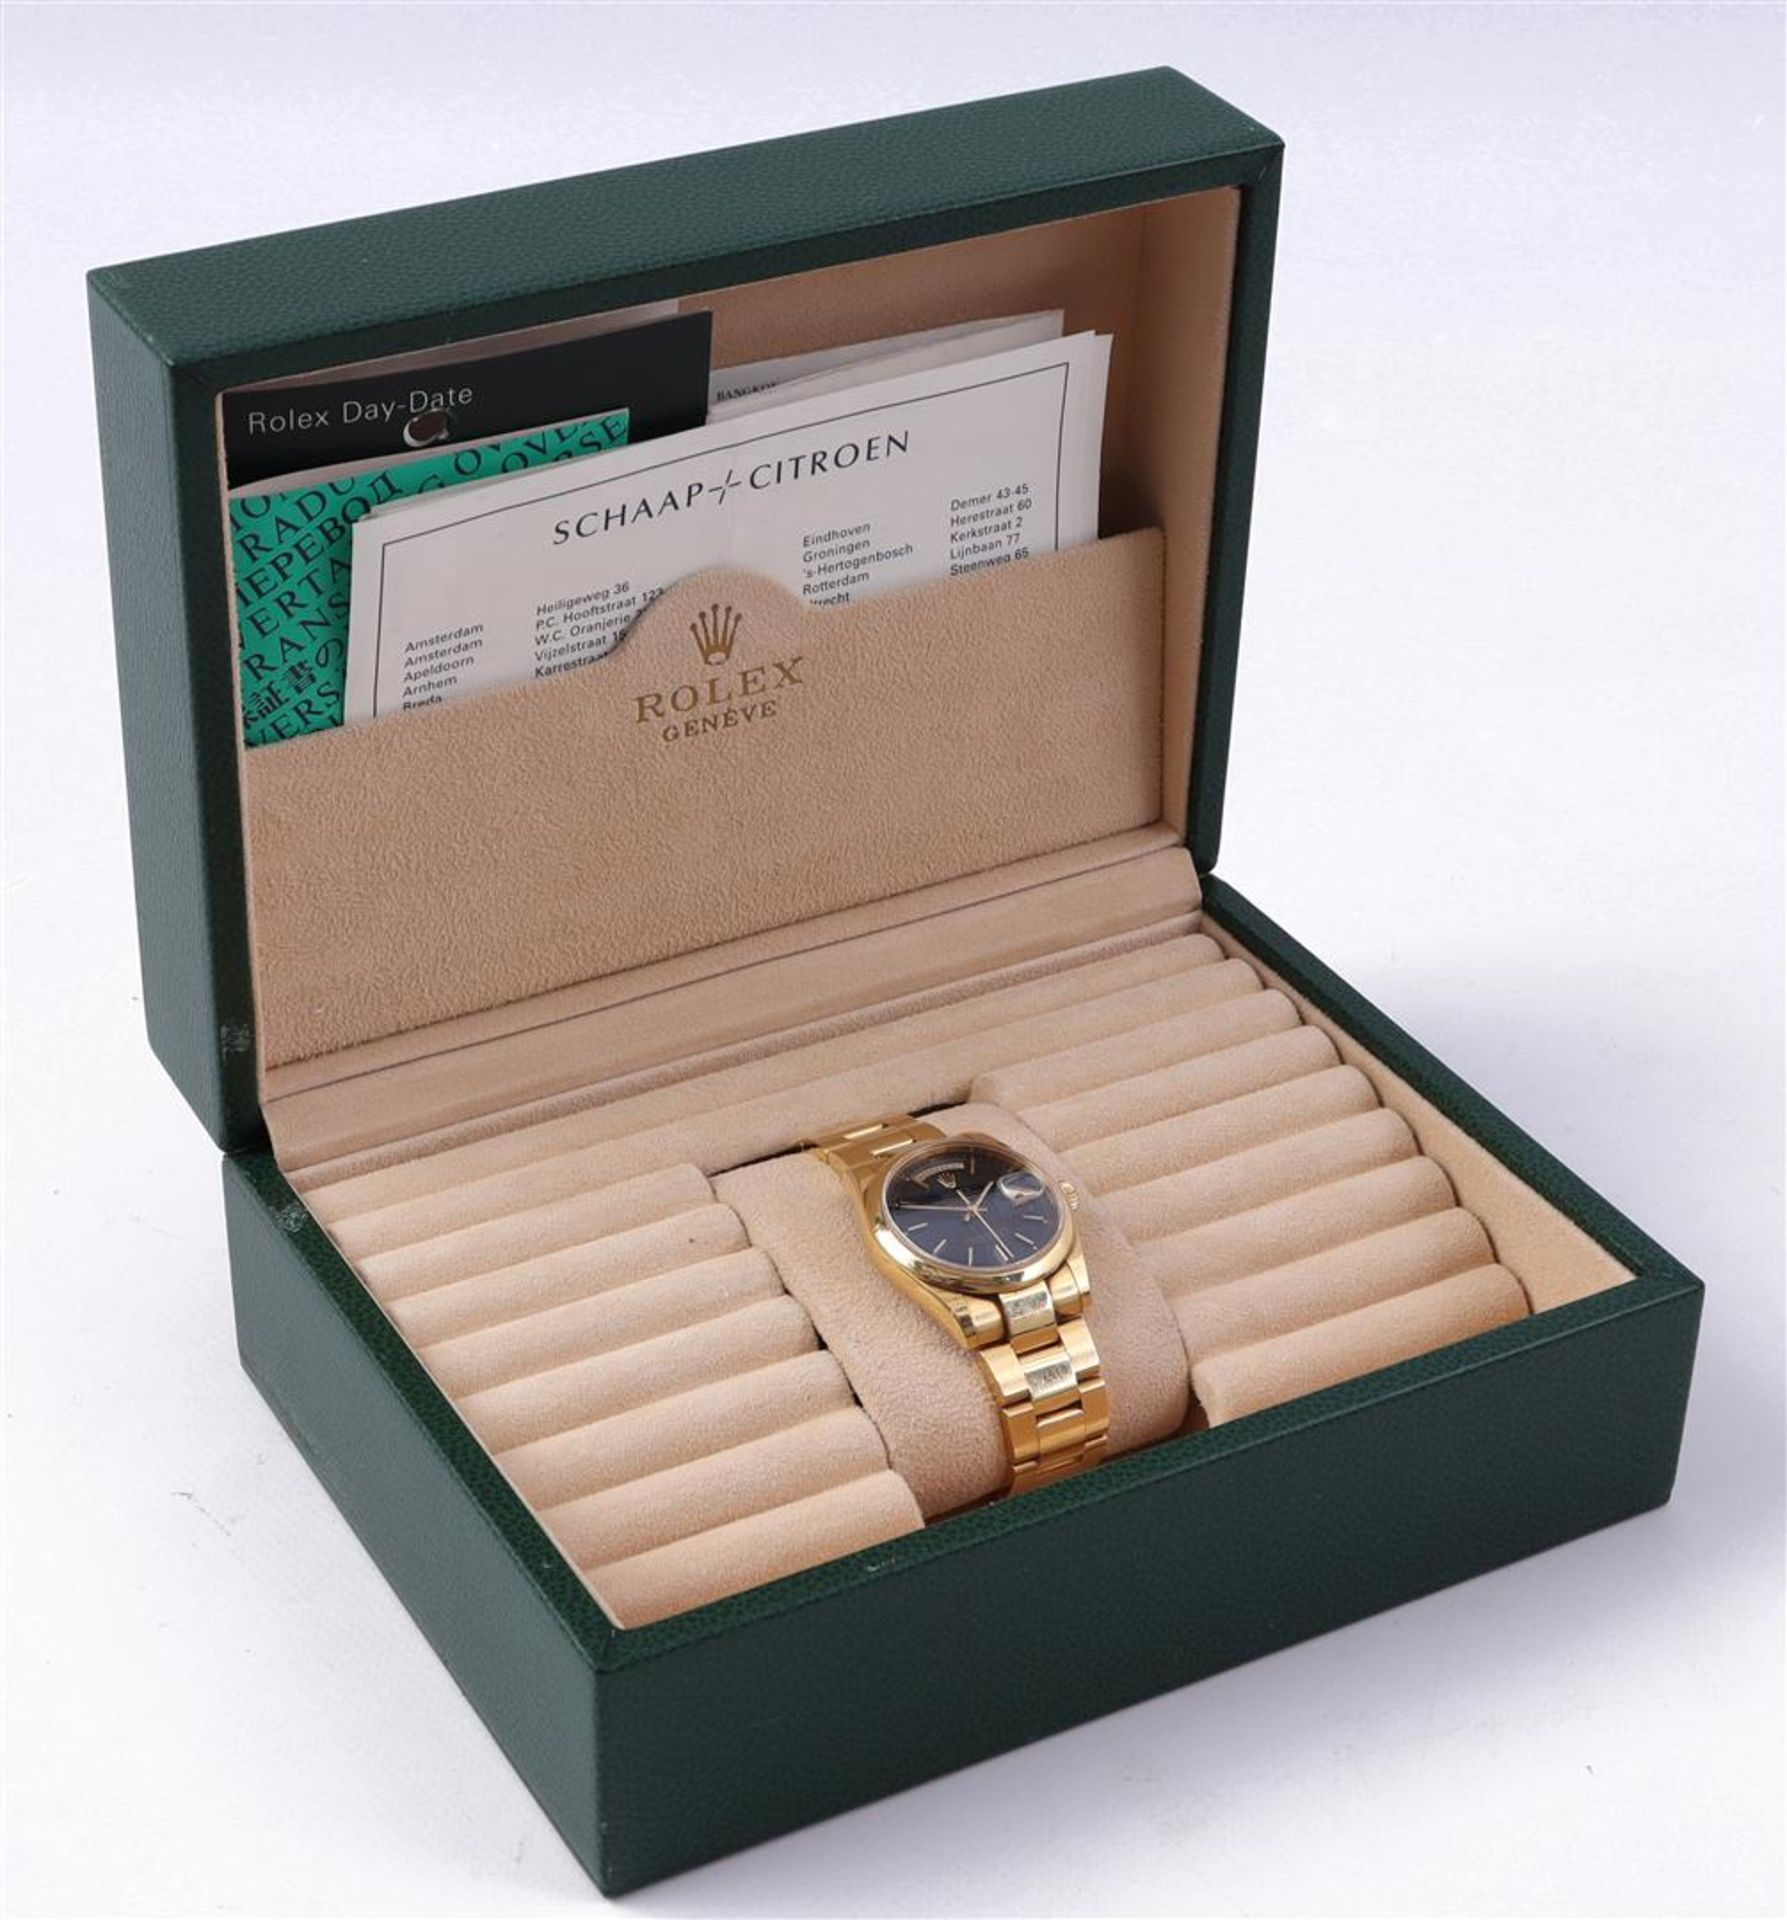 Rolex Oyster Perpetual Day Date men's wristwatch - Image 4 of 5